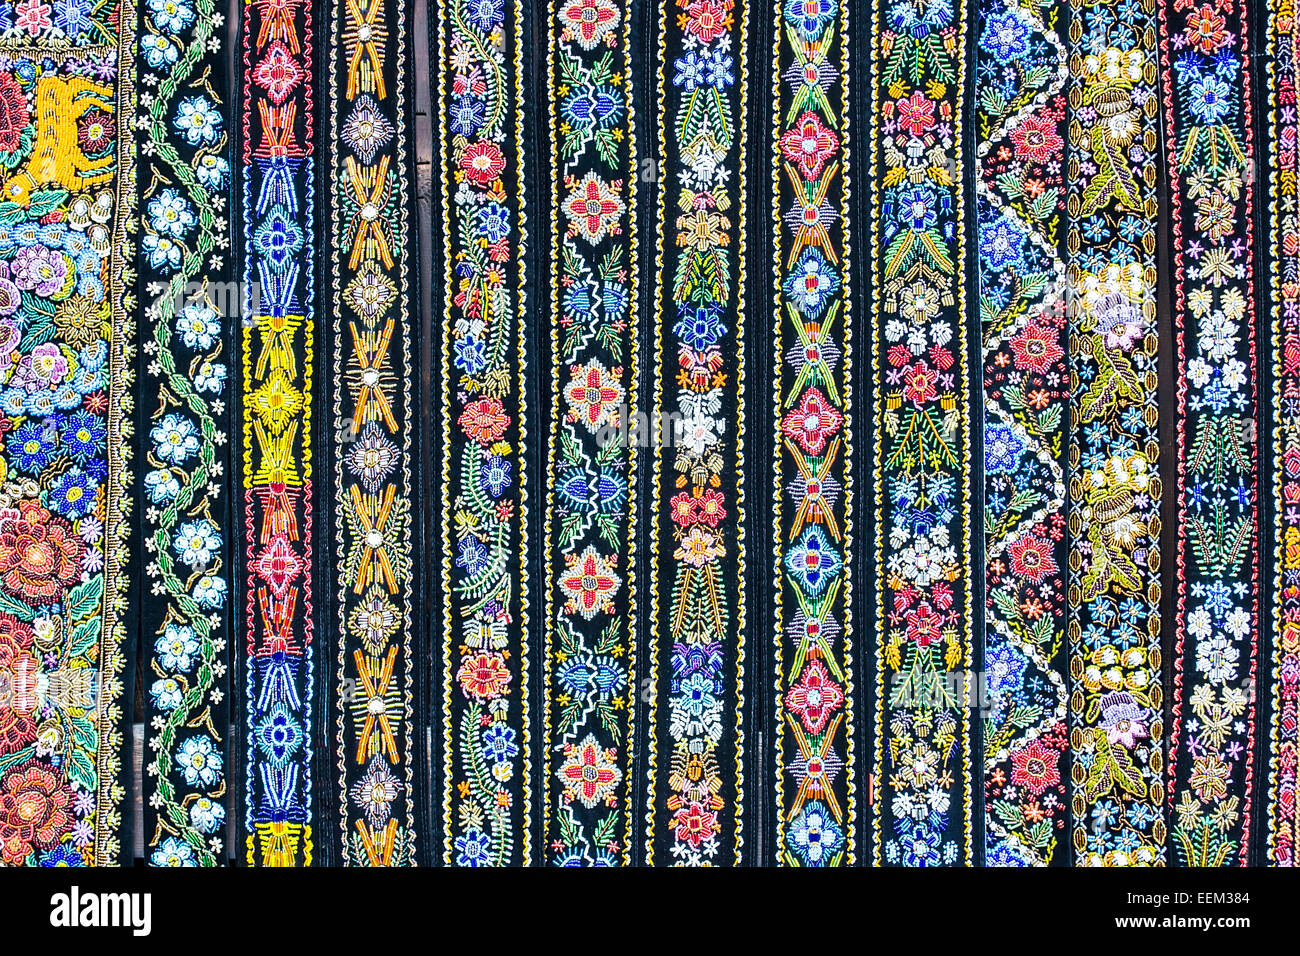 A dozen of traditional decorative belts. - Stock Image